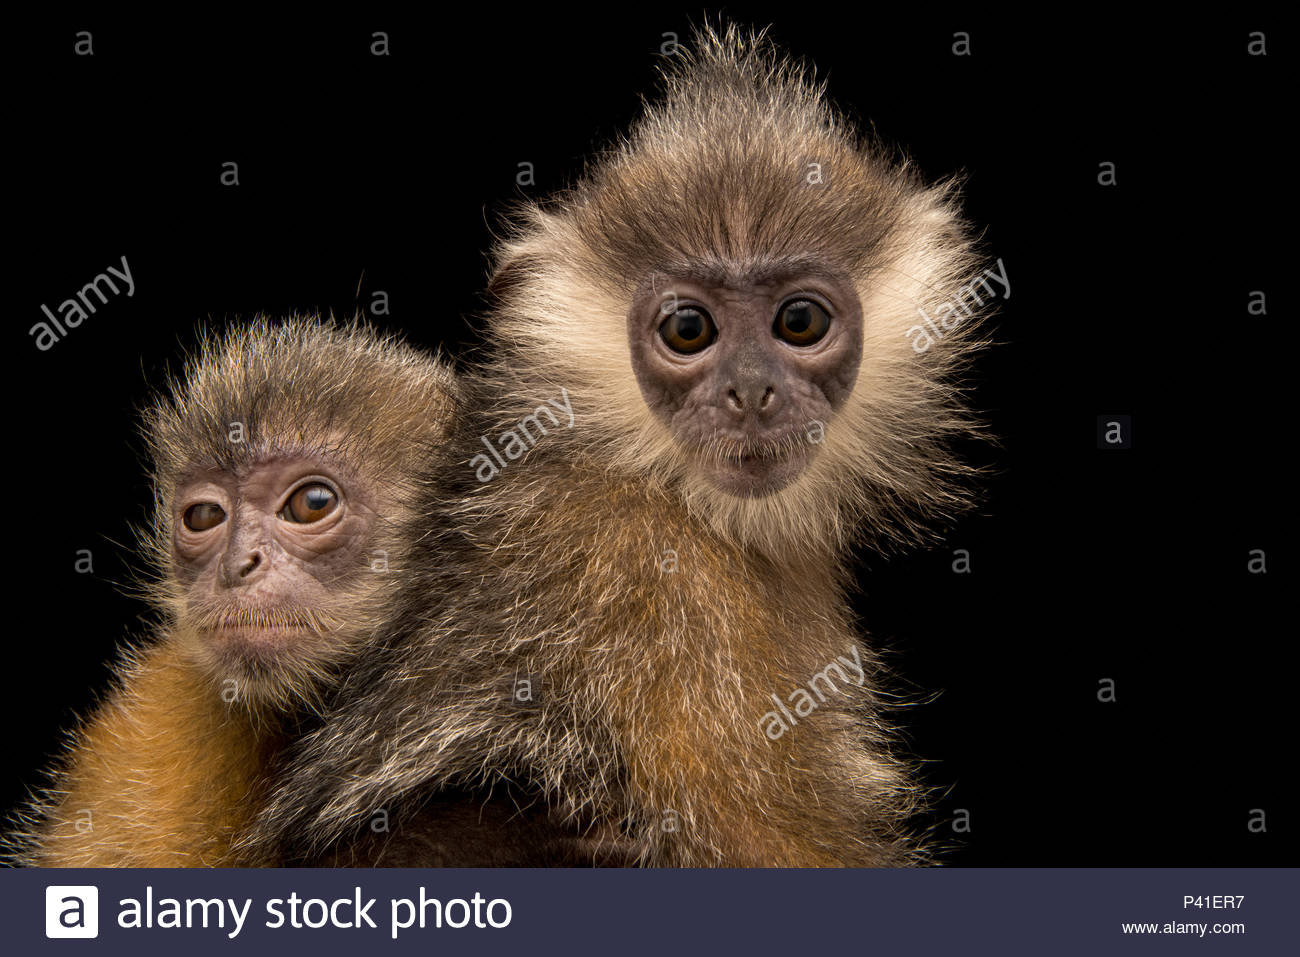 Two Indochinese silver langurs, Trachypithecus germaini, at the Angkor Centre for Conservation of Biodiversity. - Stock Image